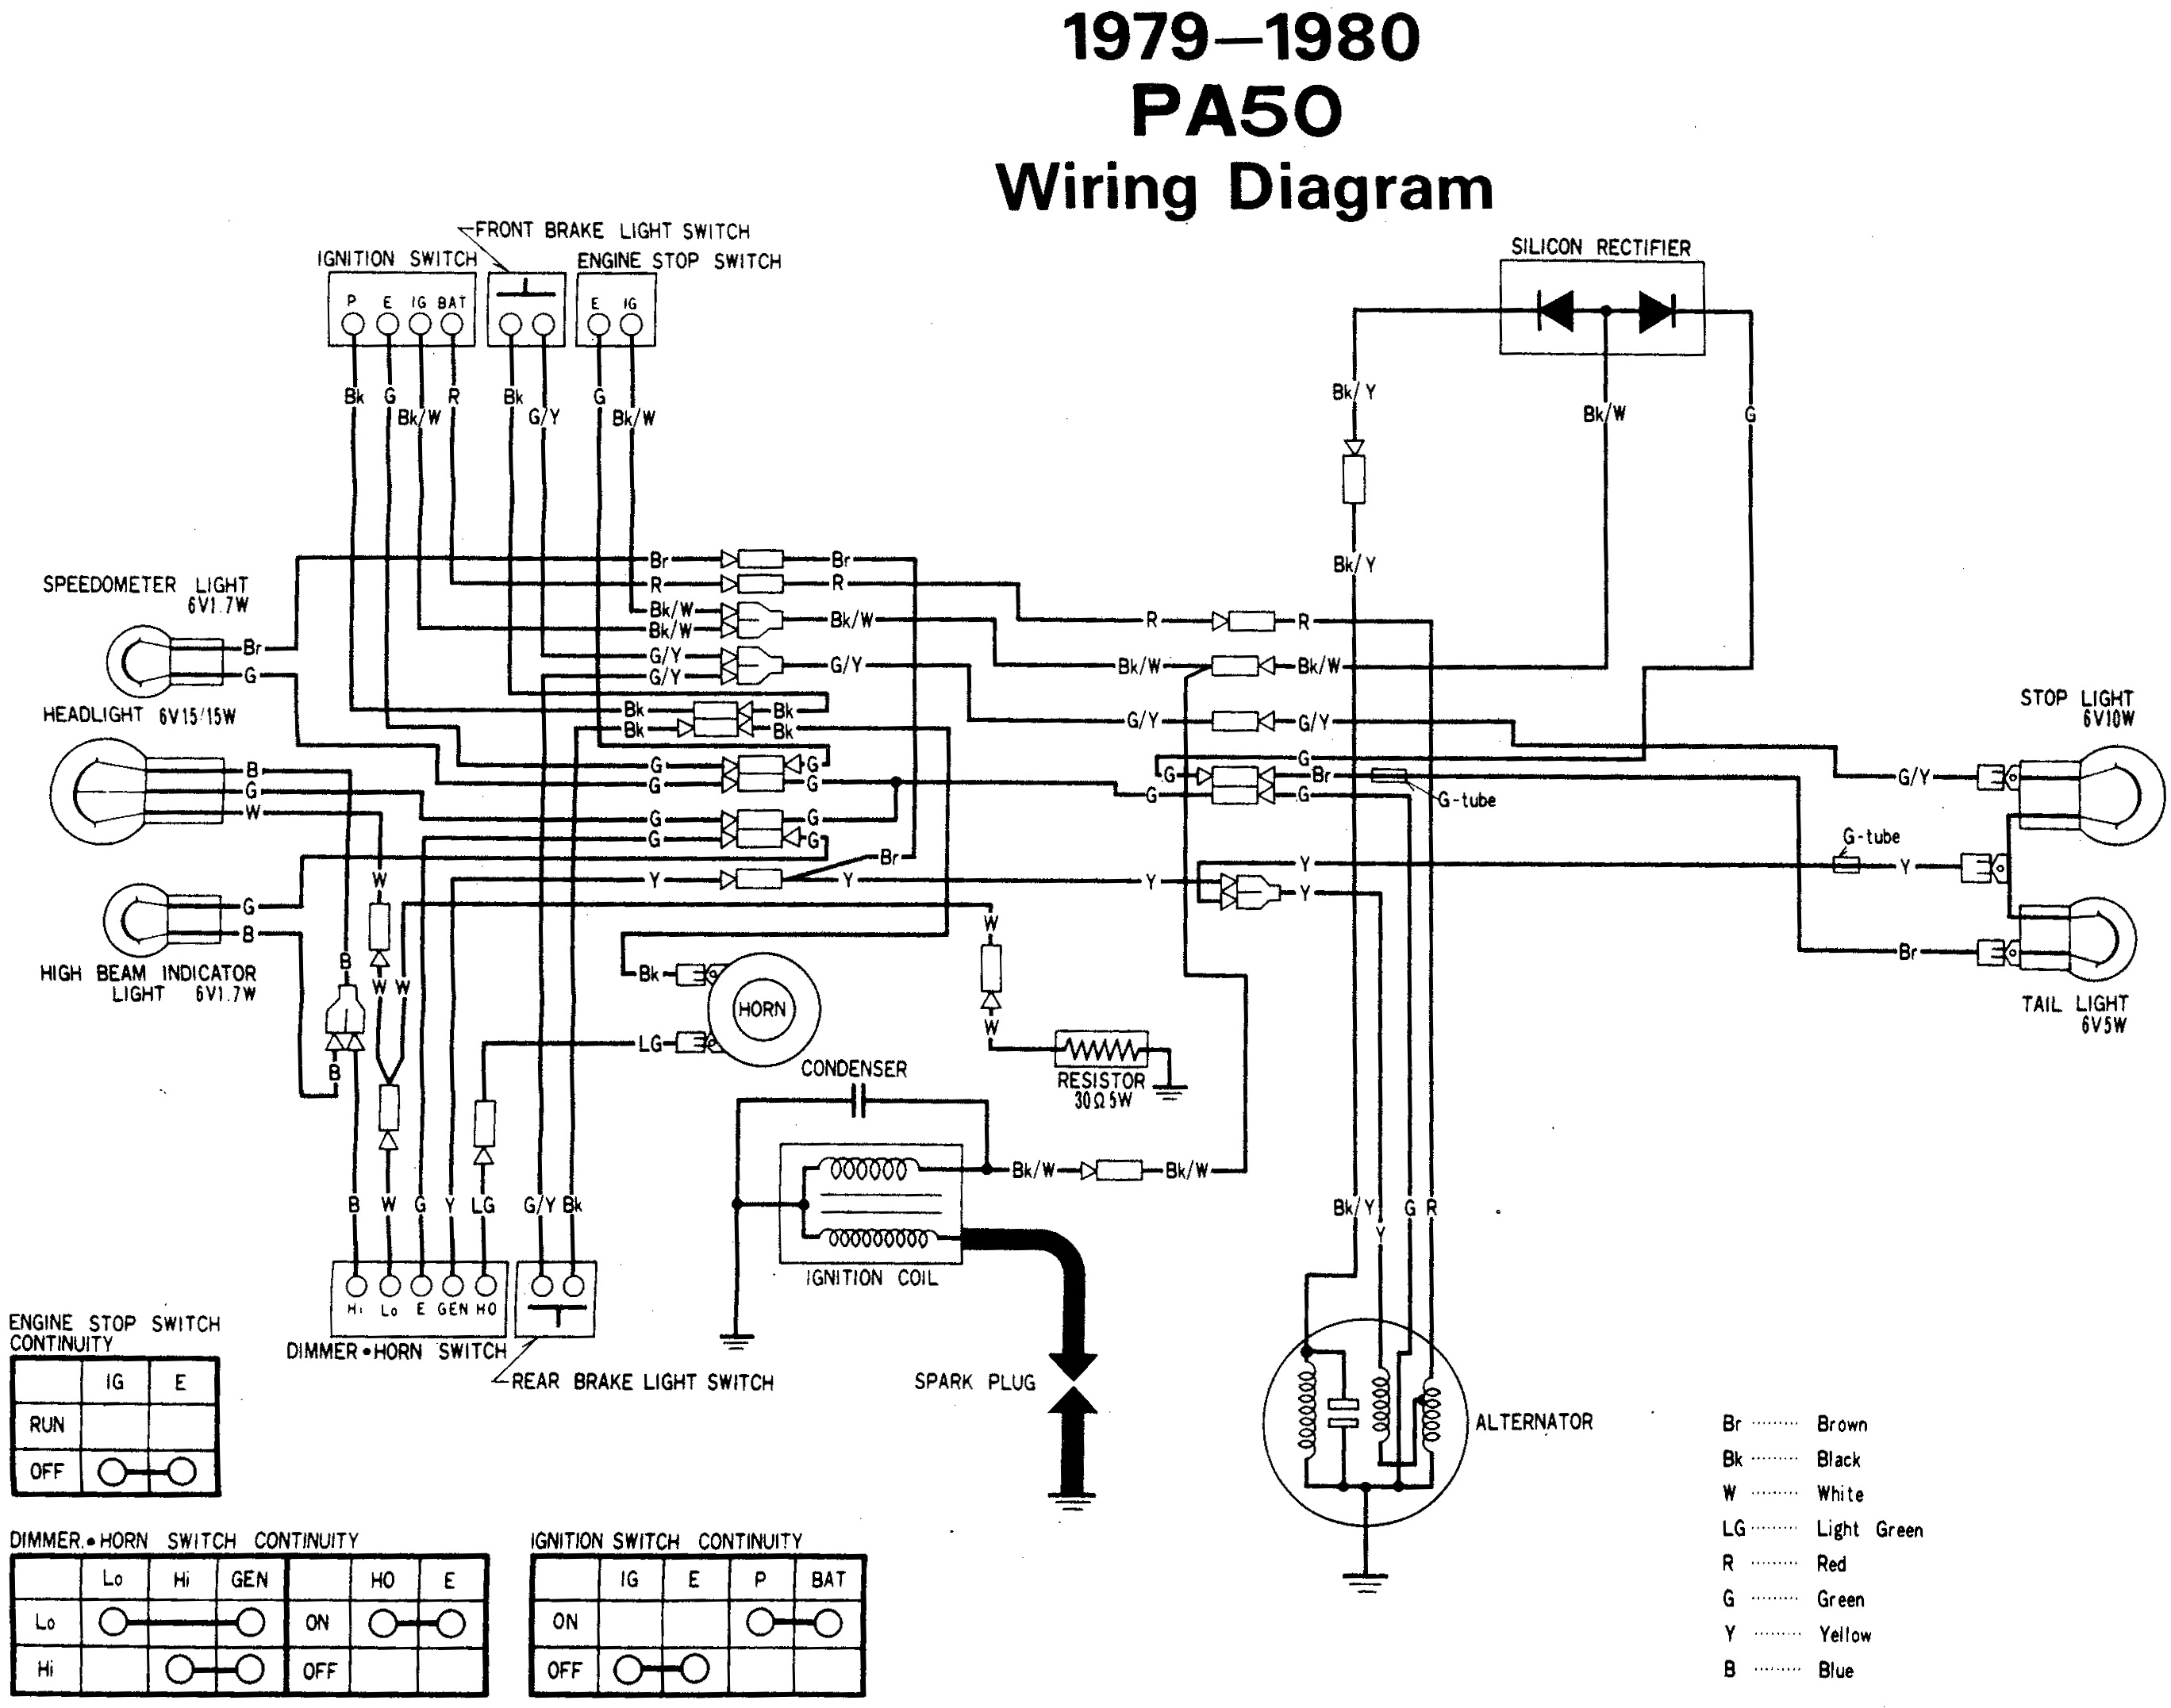 Honda Pa50 Wiring Diagram on wiring diagram for 1980 honda express